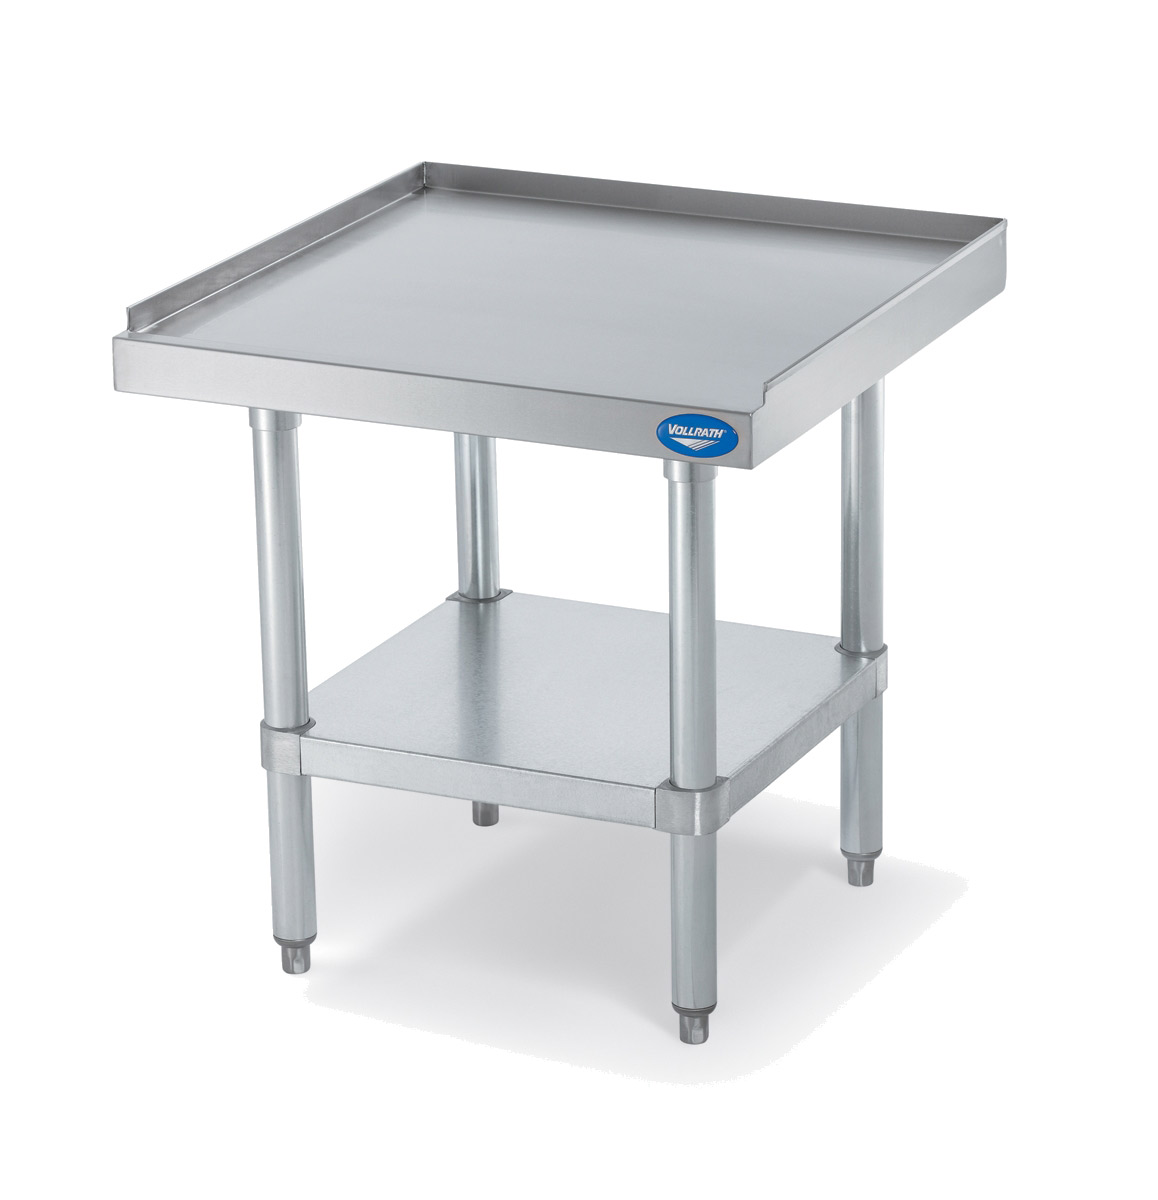 Vollrath 40741 equipment stand, for countertop cooking